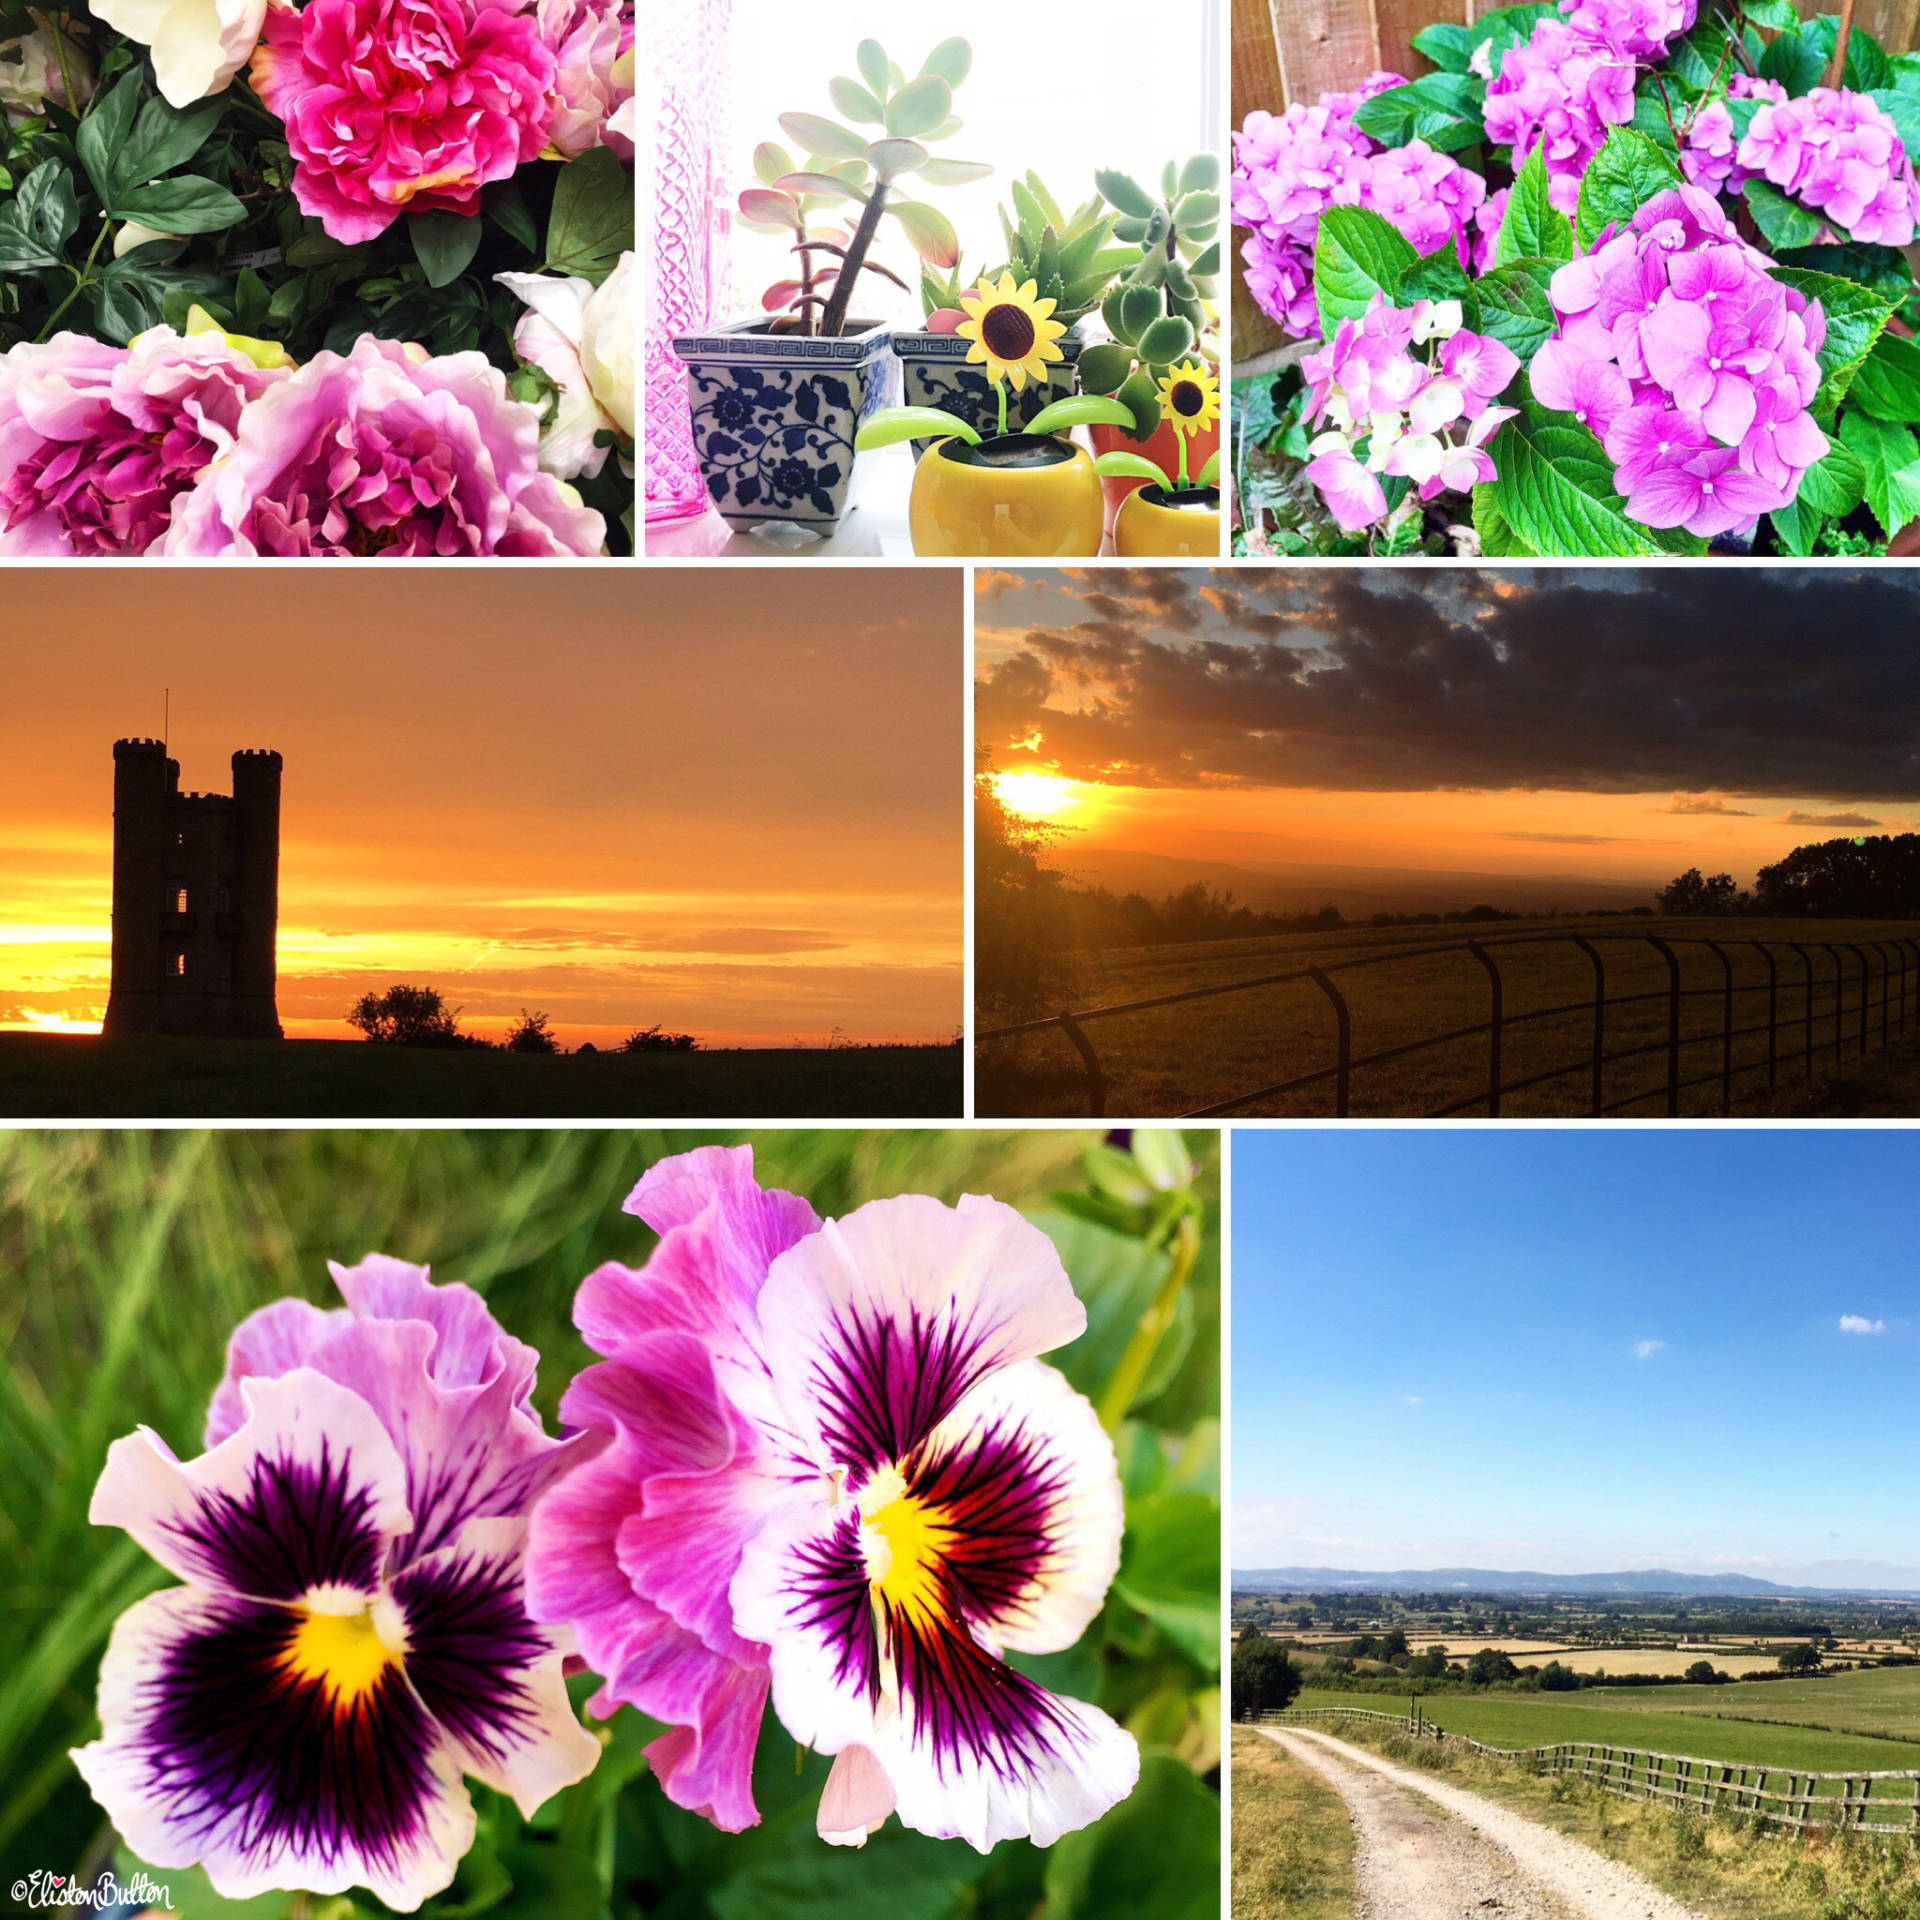 August 2016 Round Up - Sunsets and Flowers by Eliston Button - Around Here…September 2016 at www.elistonbutton.com - Eliston Button - That Crafty Kid – Art, Design, Craft & Adventure.